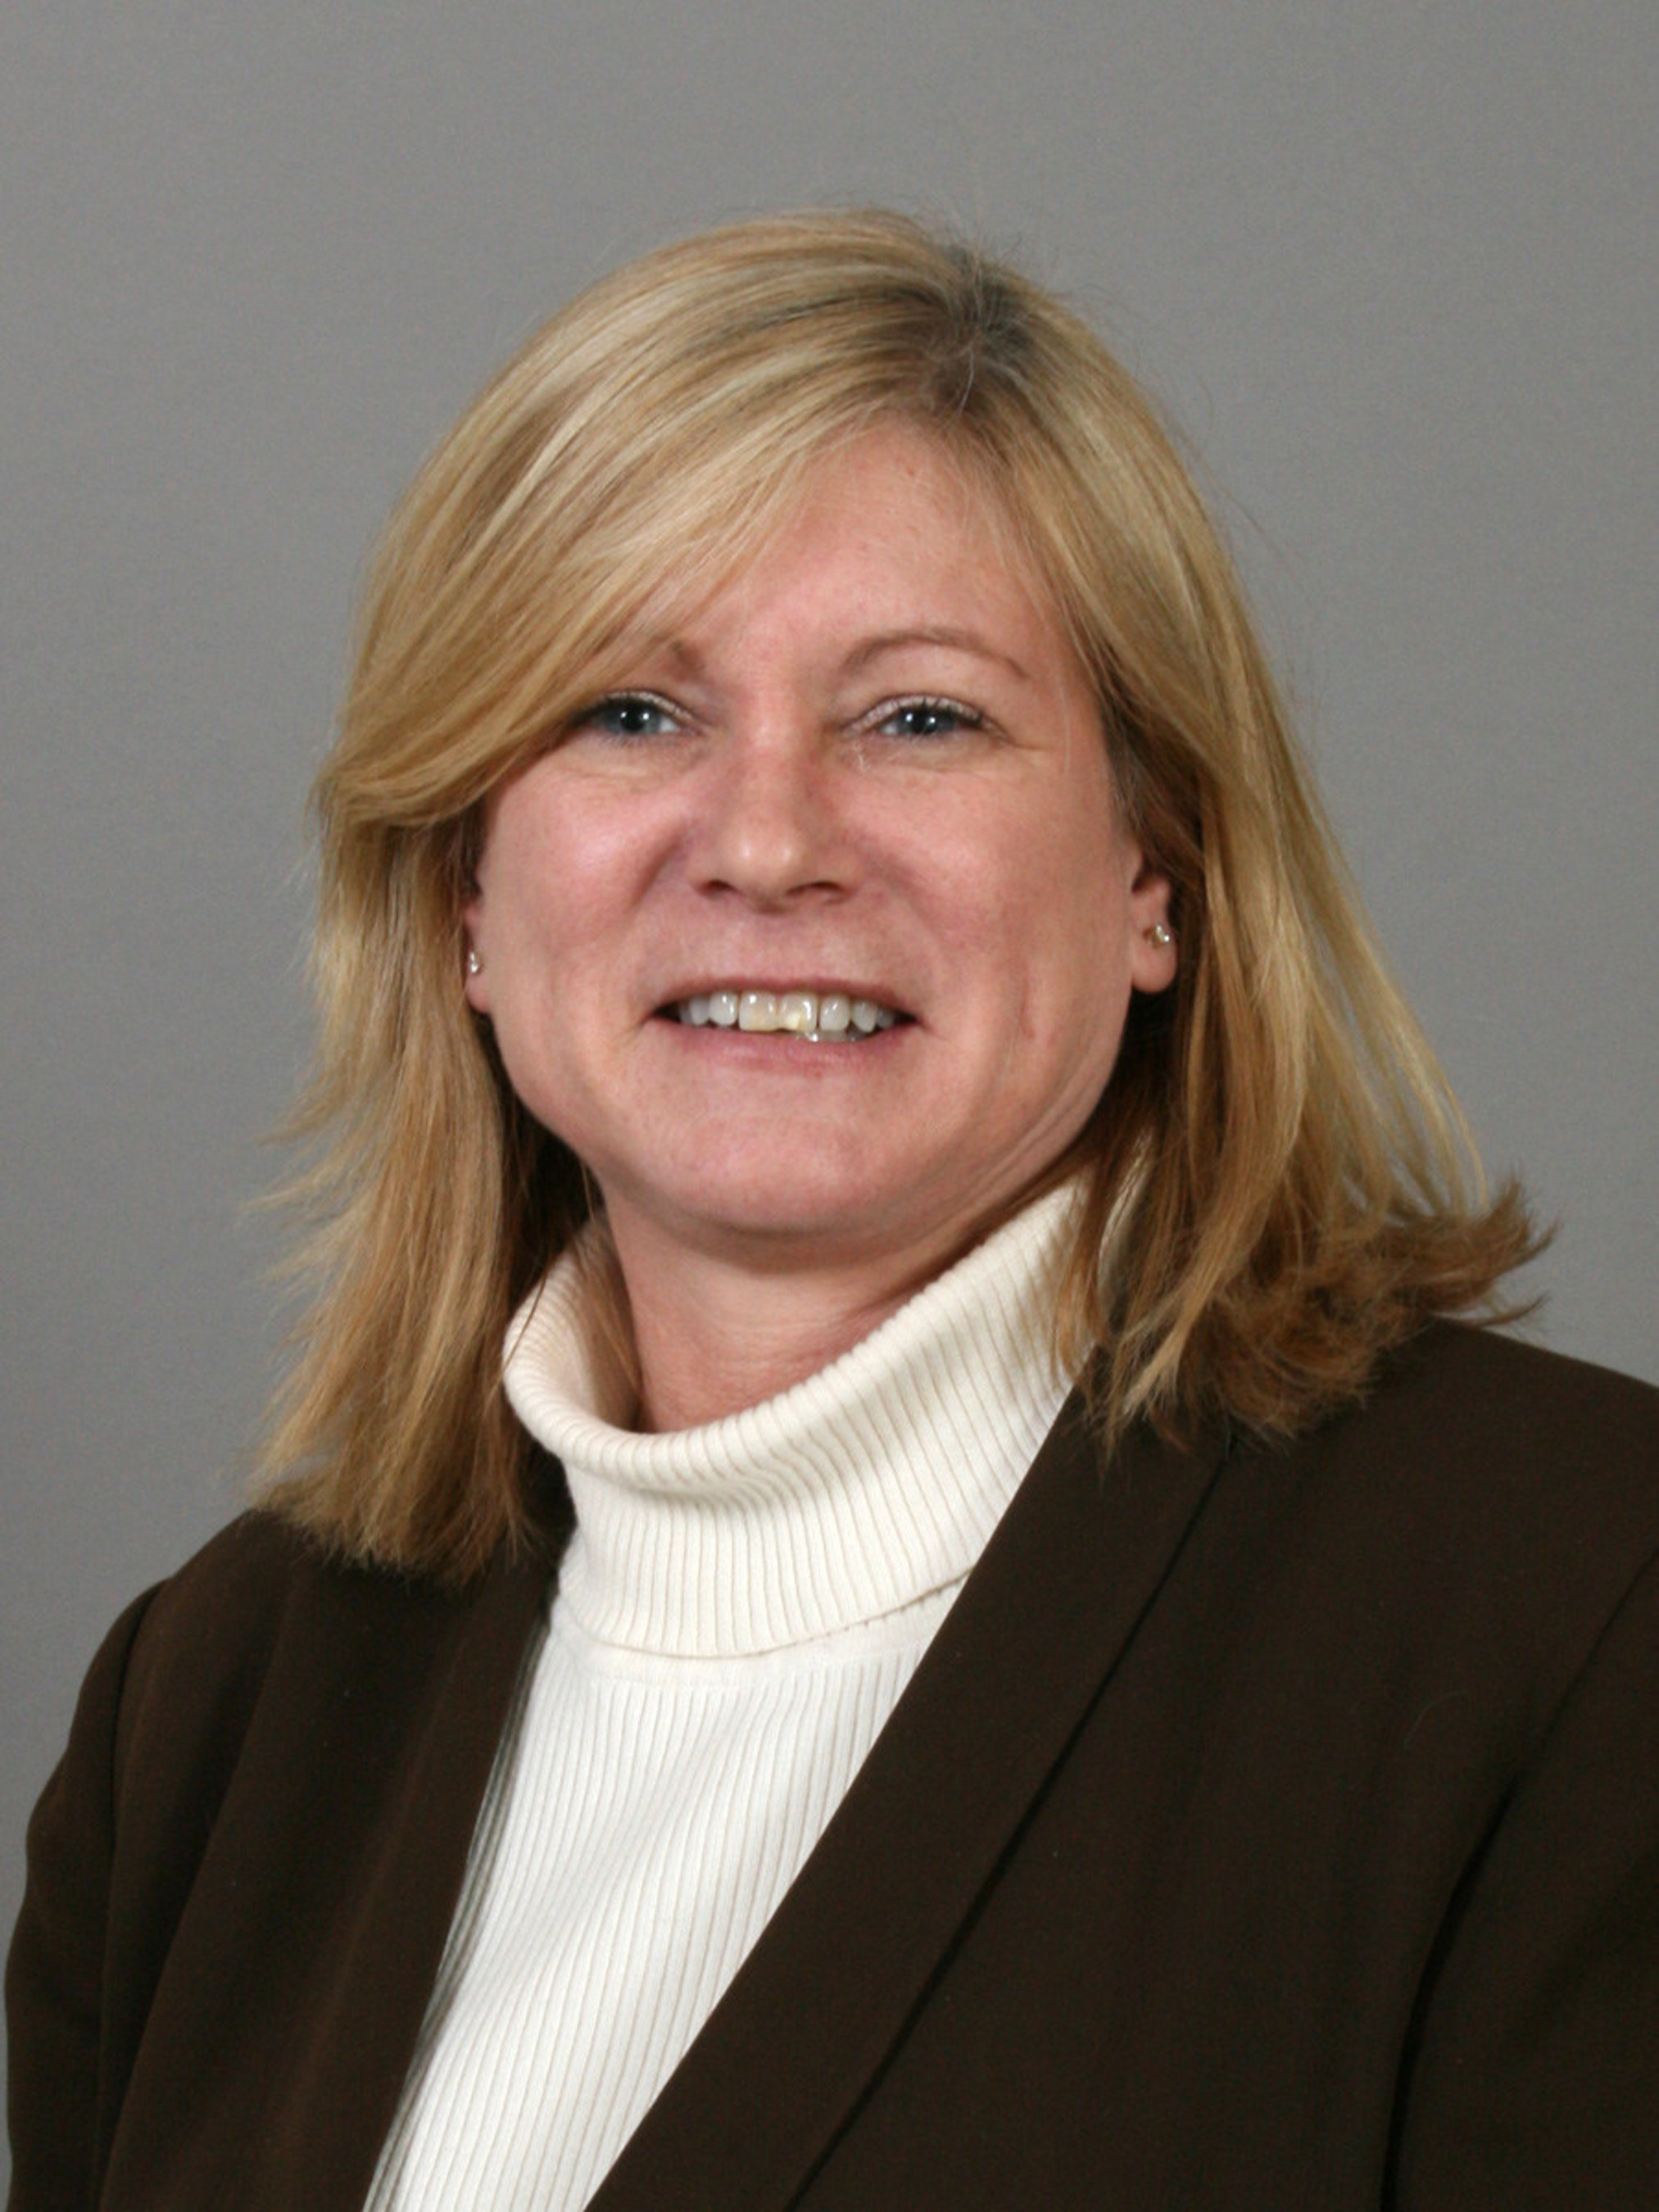 Jennifer S. Dotts is recognized by Continental Who's Who as a Pinnacle Professional